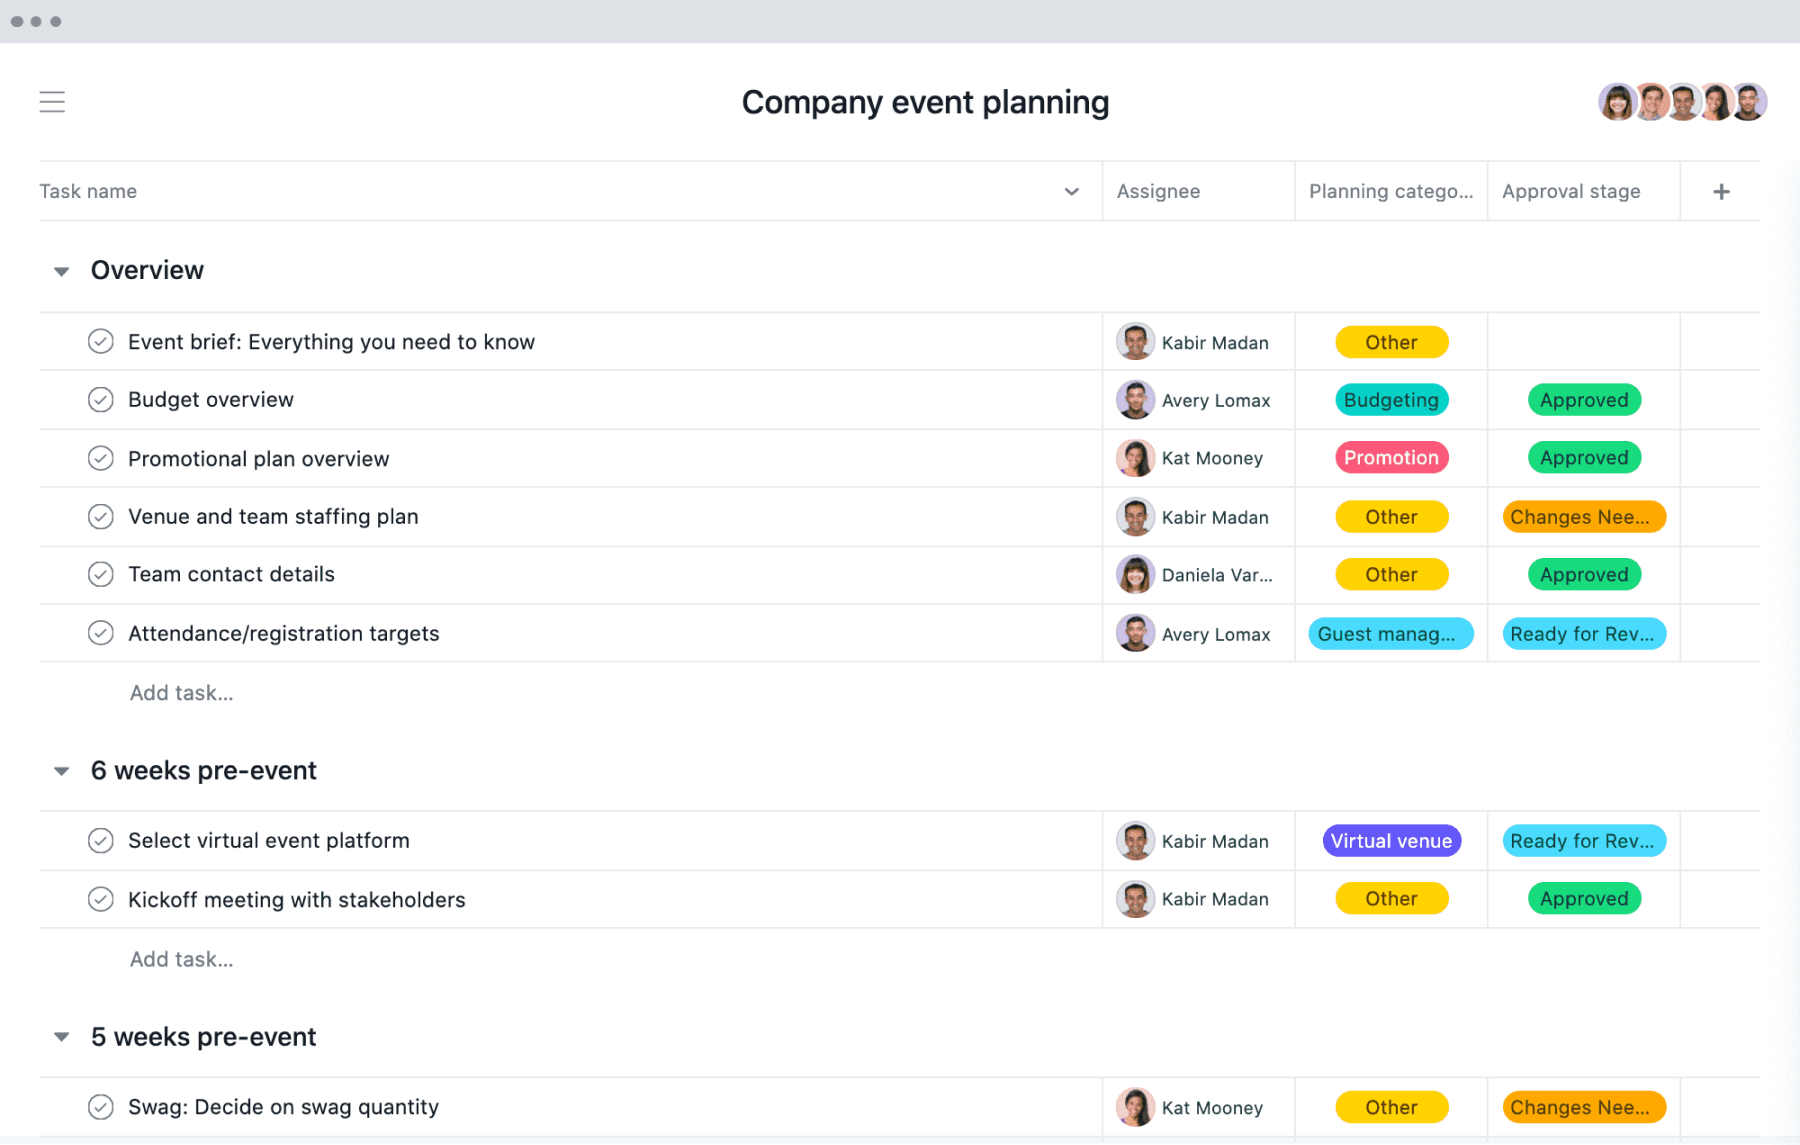 [List view] Company event planning project in Asana, spreadsheet-style view with project deliverables